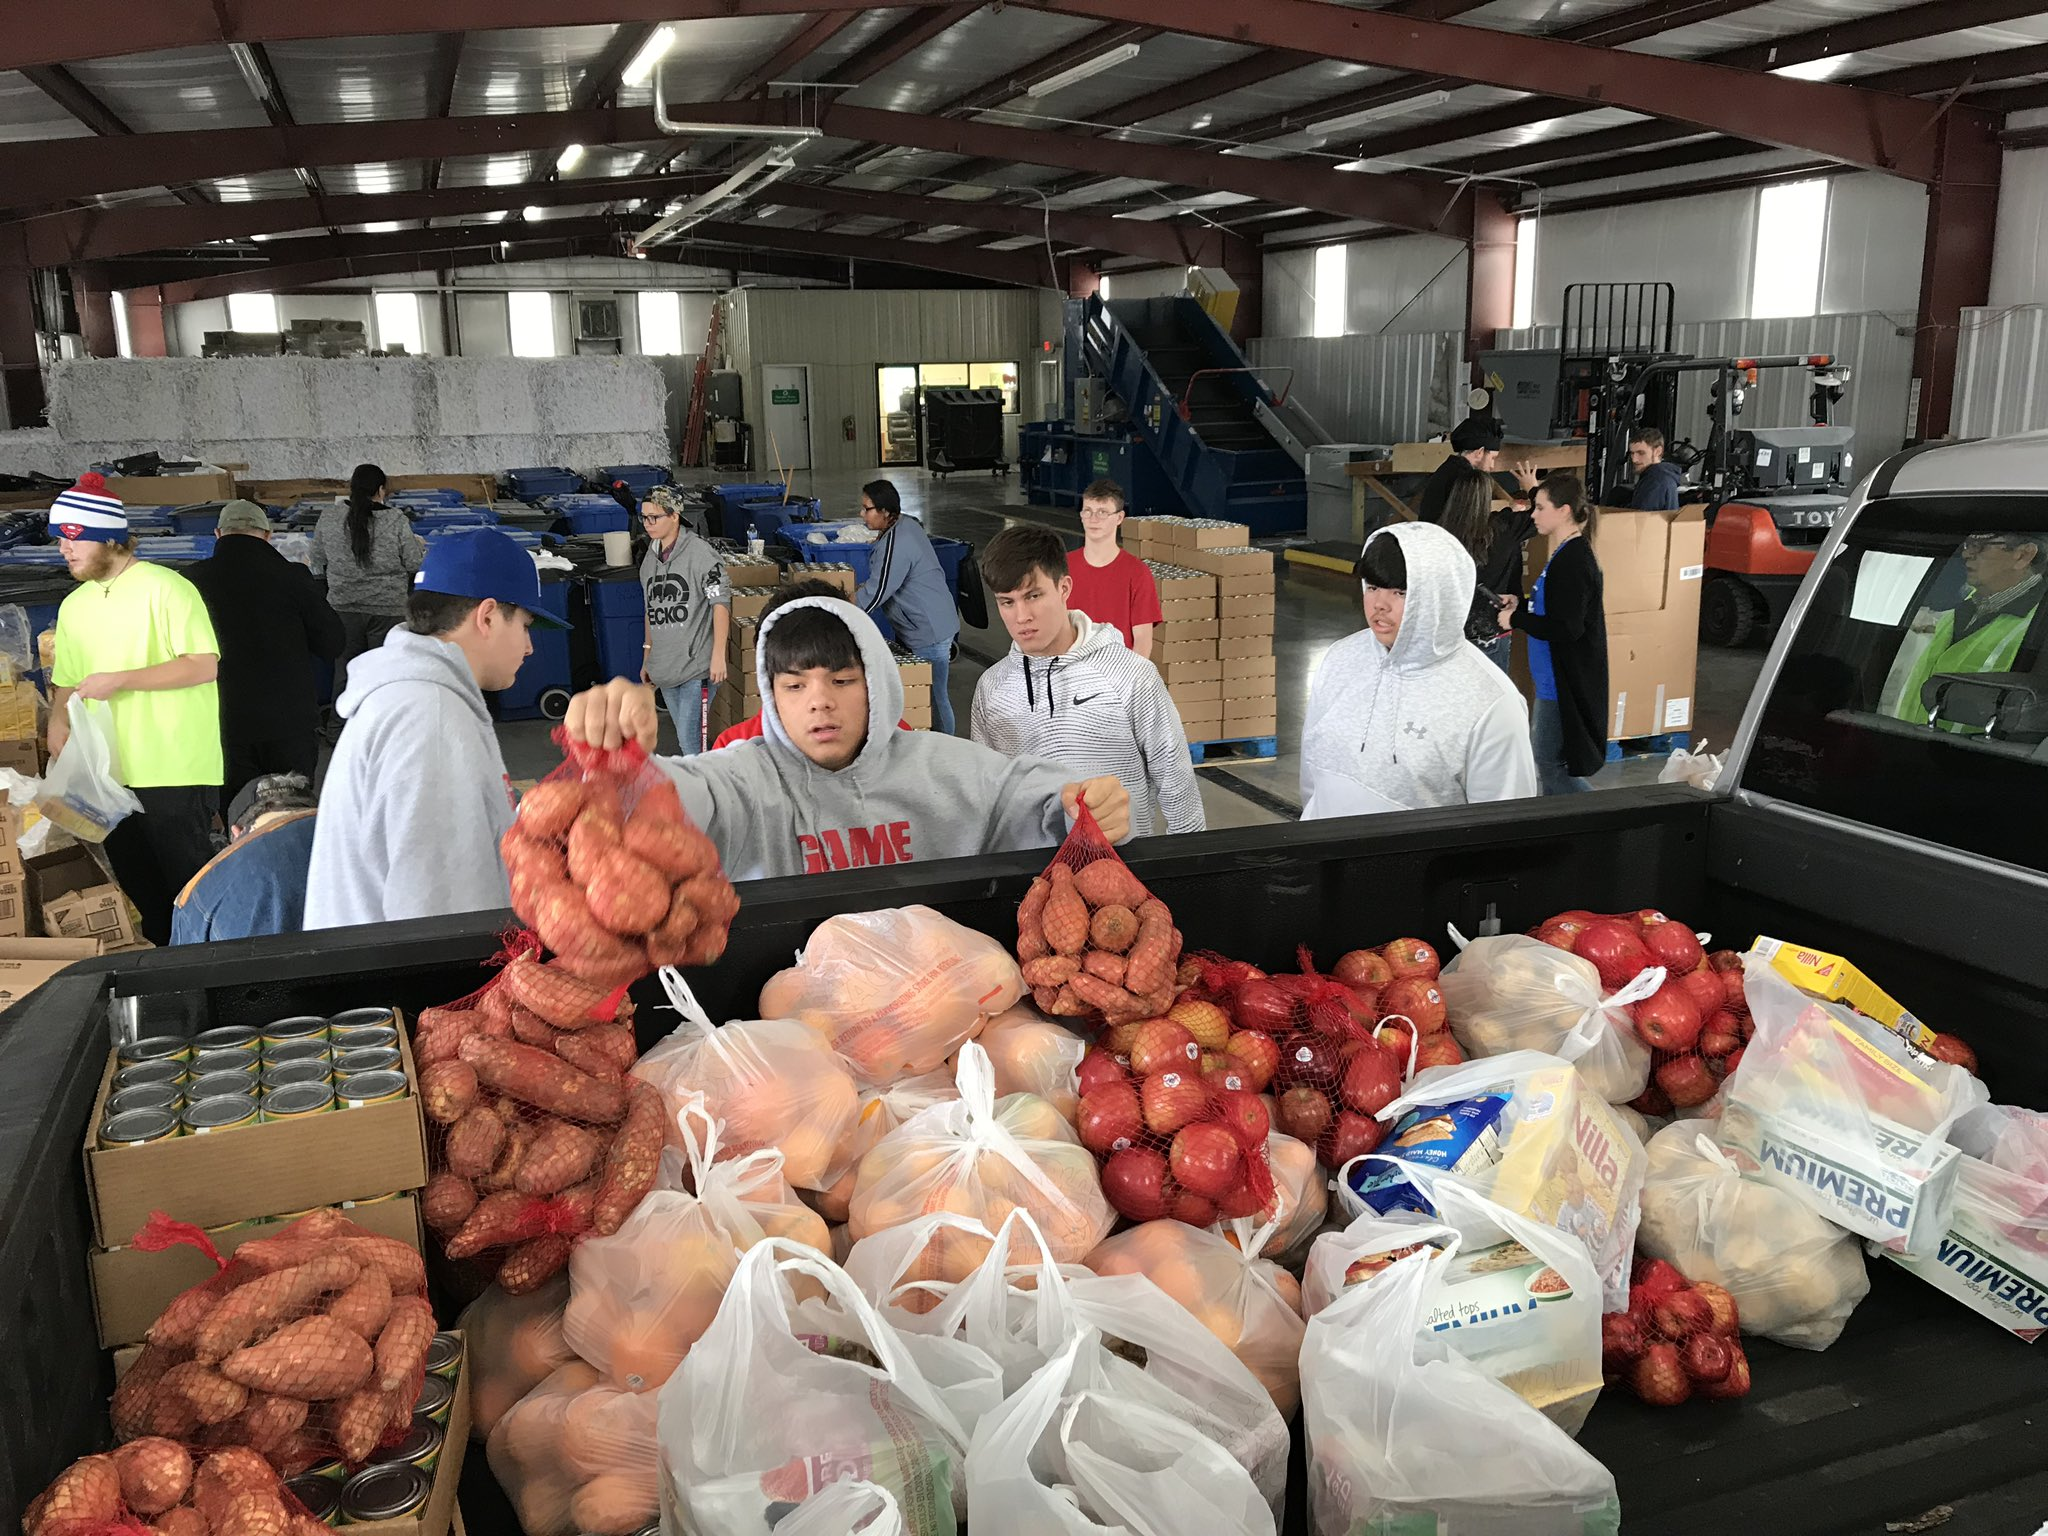 Addressing food insecurity in northeast Oklahoma